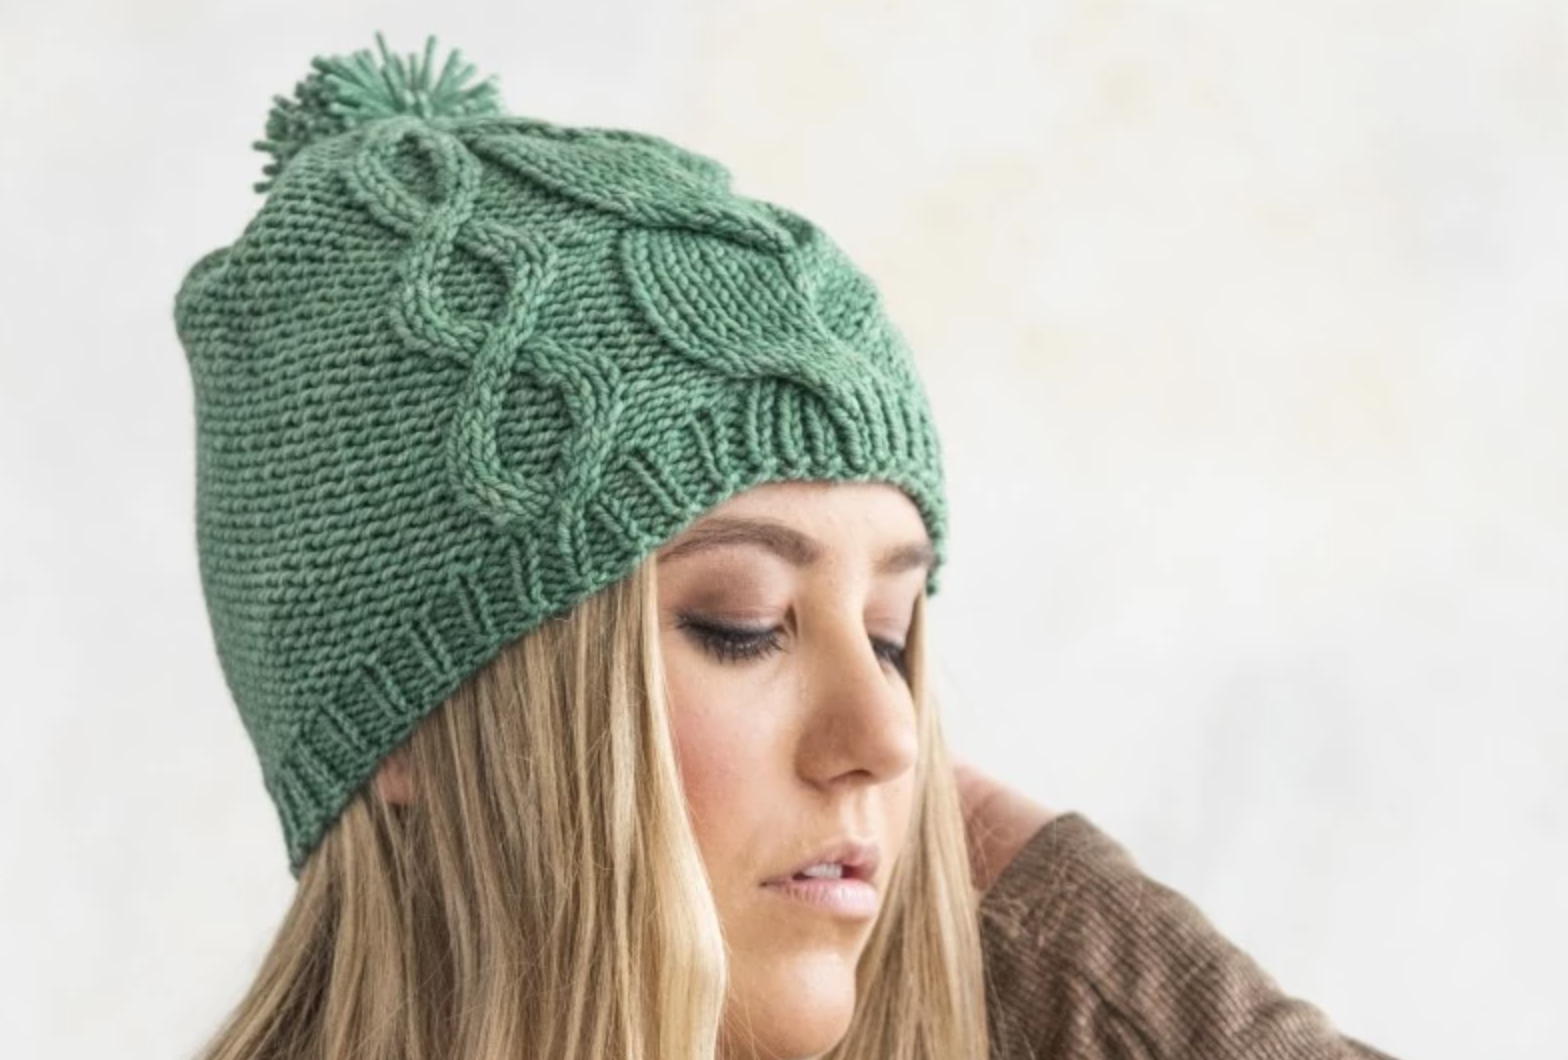 woman wearing green cabled knit hat